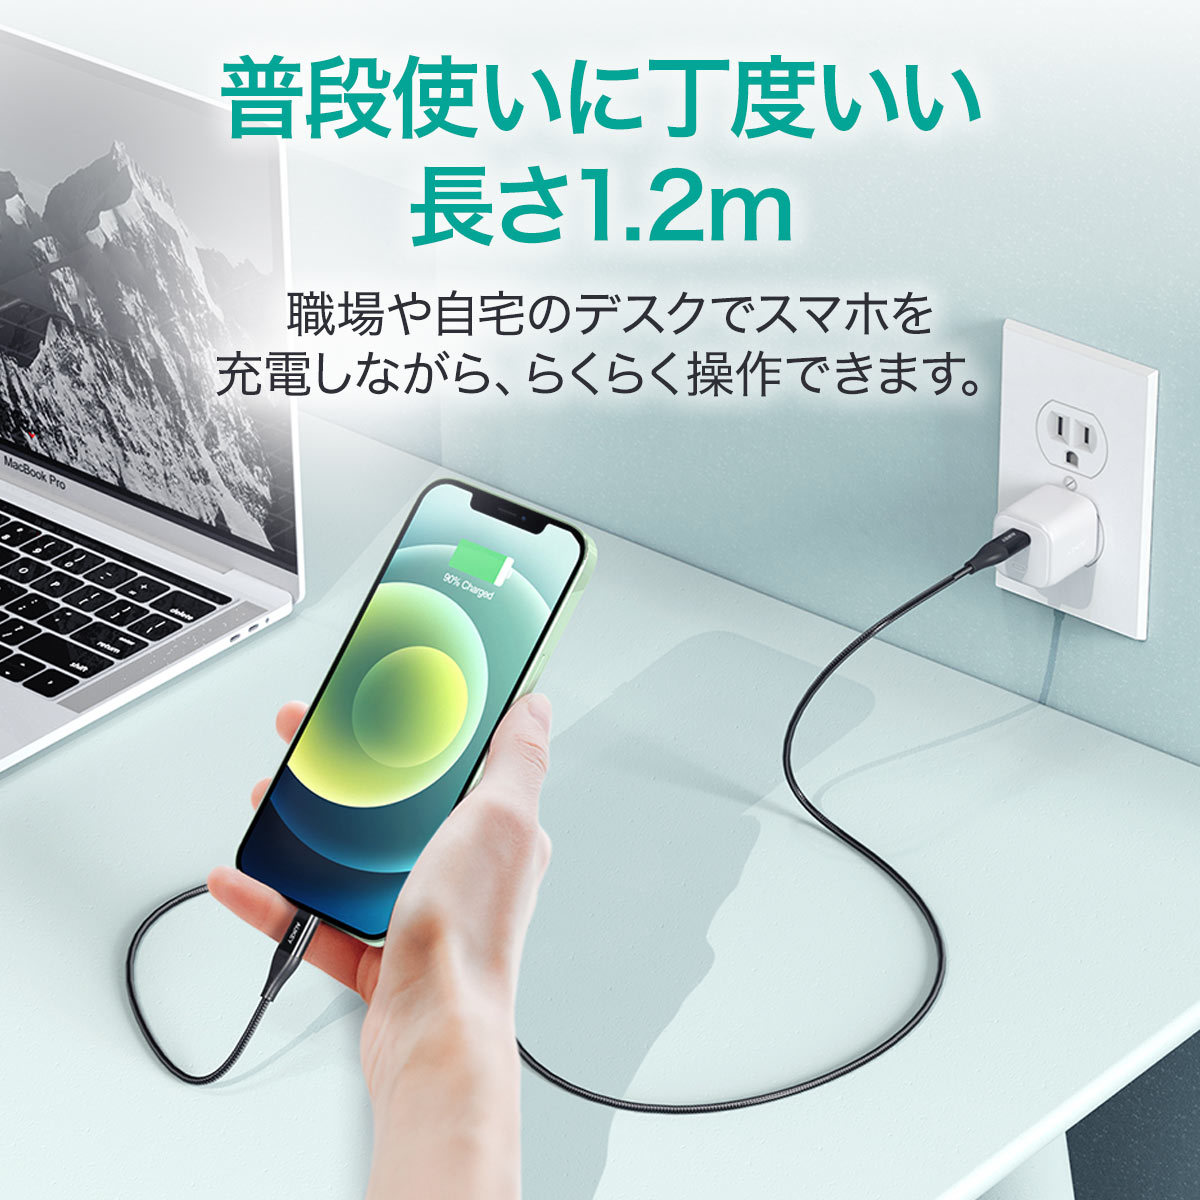 Impulse Series USB-C to Lightningケーブル(1.2m)